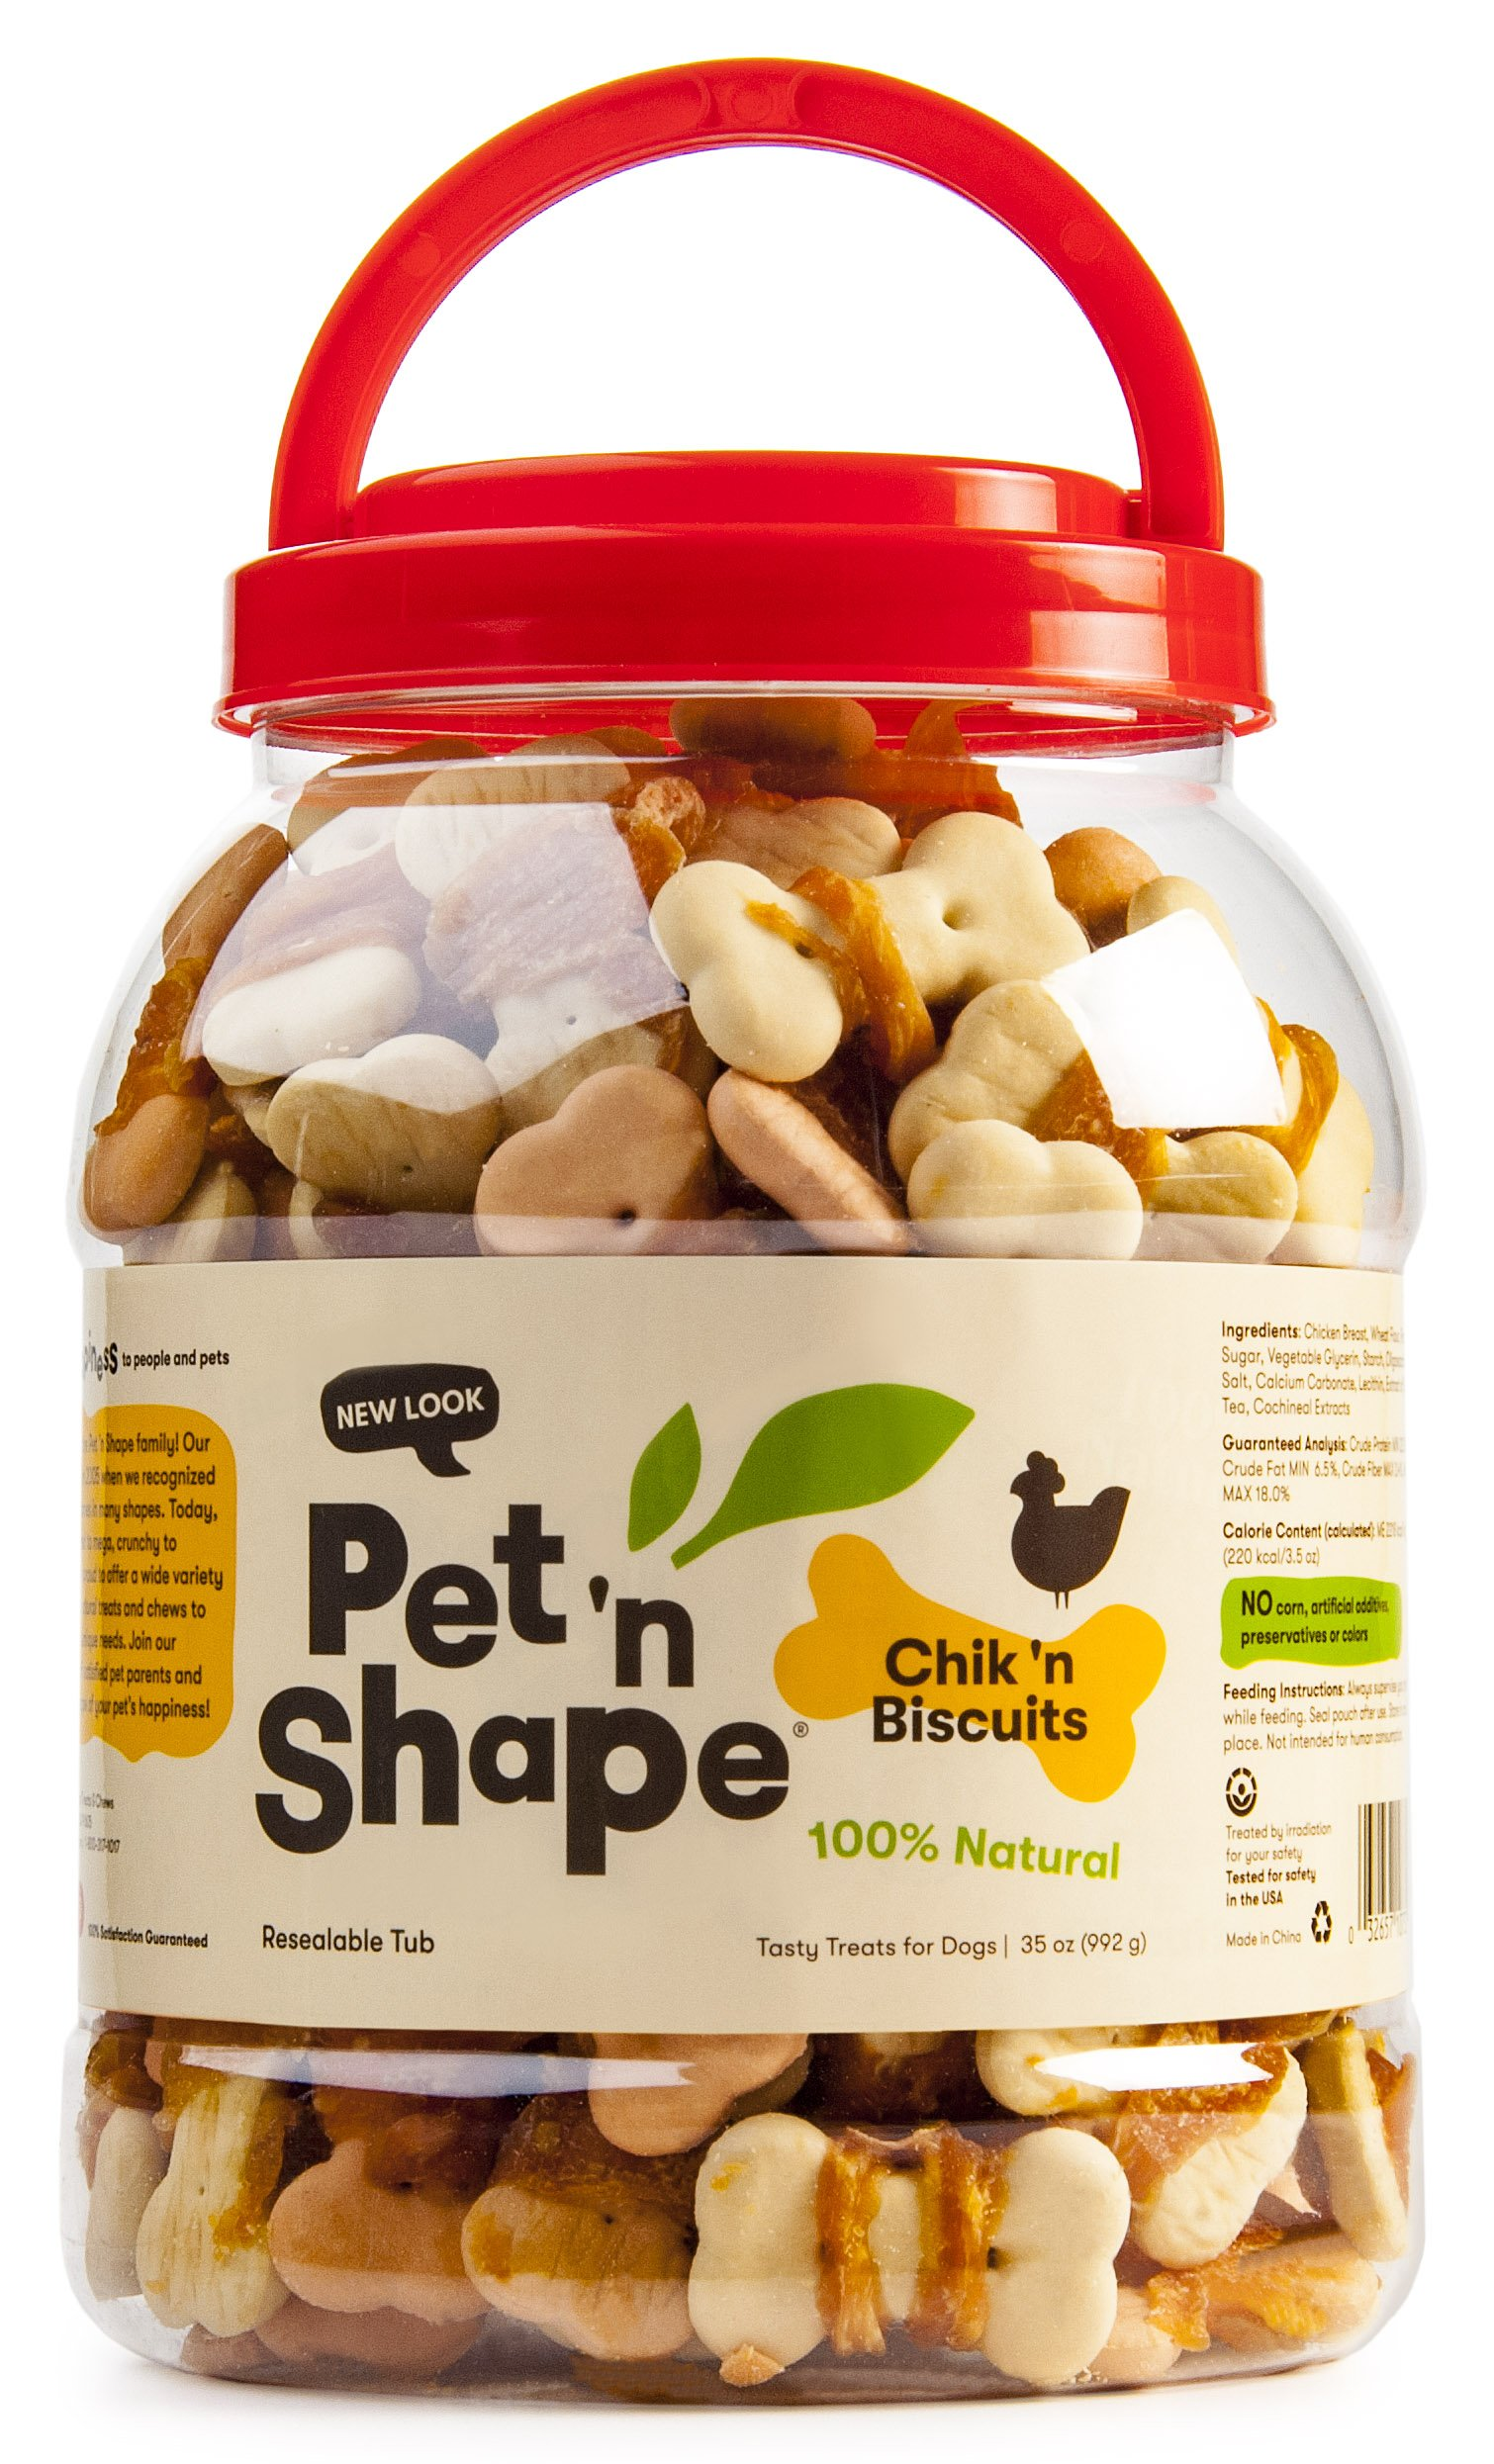 Pet 'n Shape Chicken Biscuits Natural Dog Treats, 2-Pound Tub